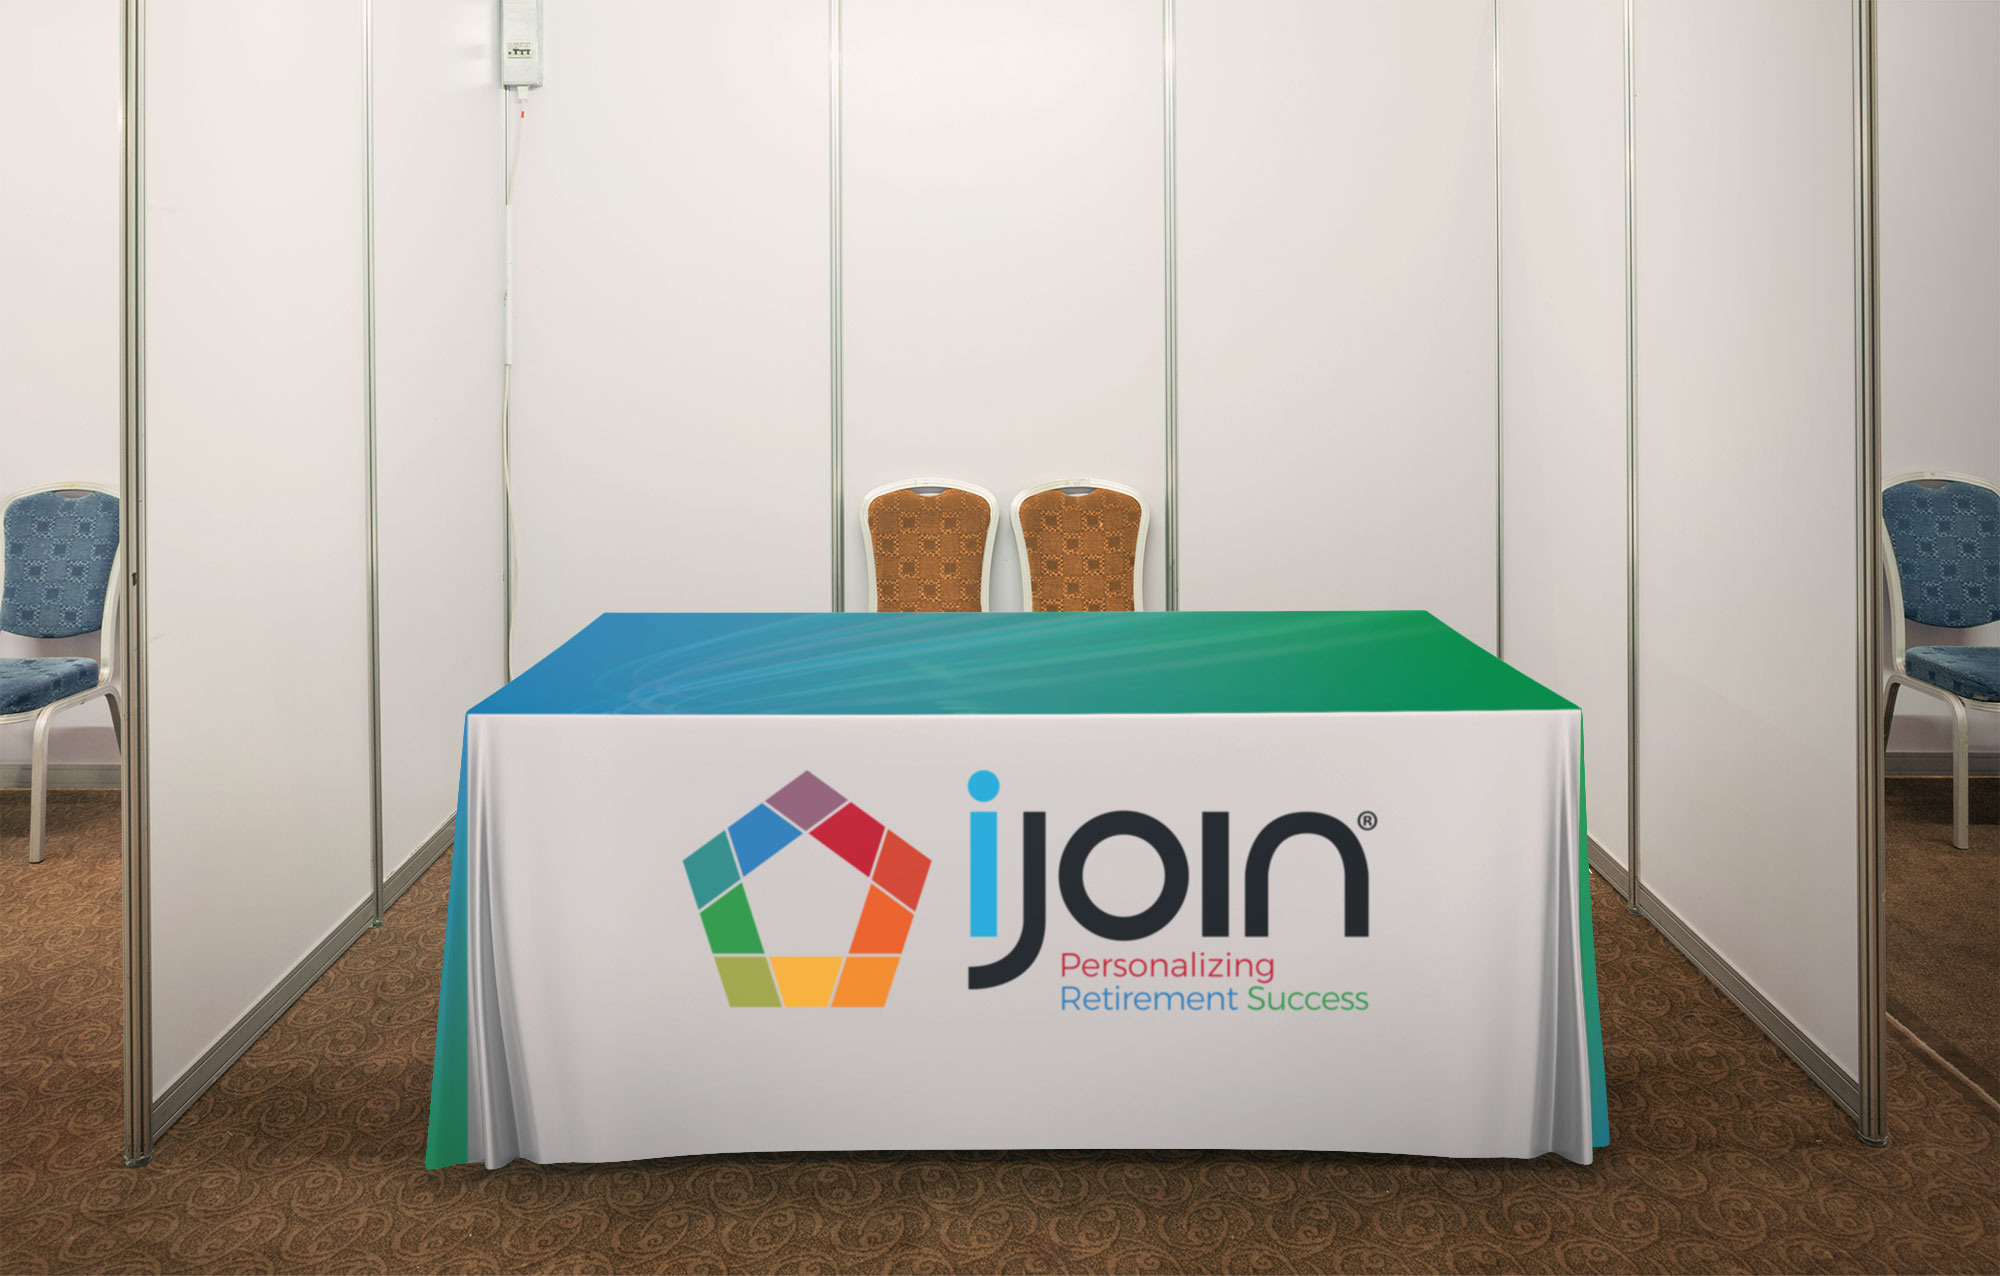 Photo: iJoin custom table throw for trade show booths